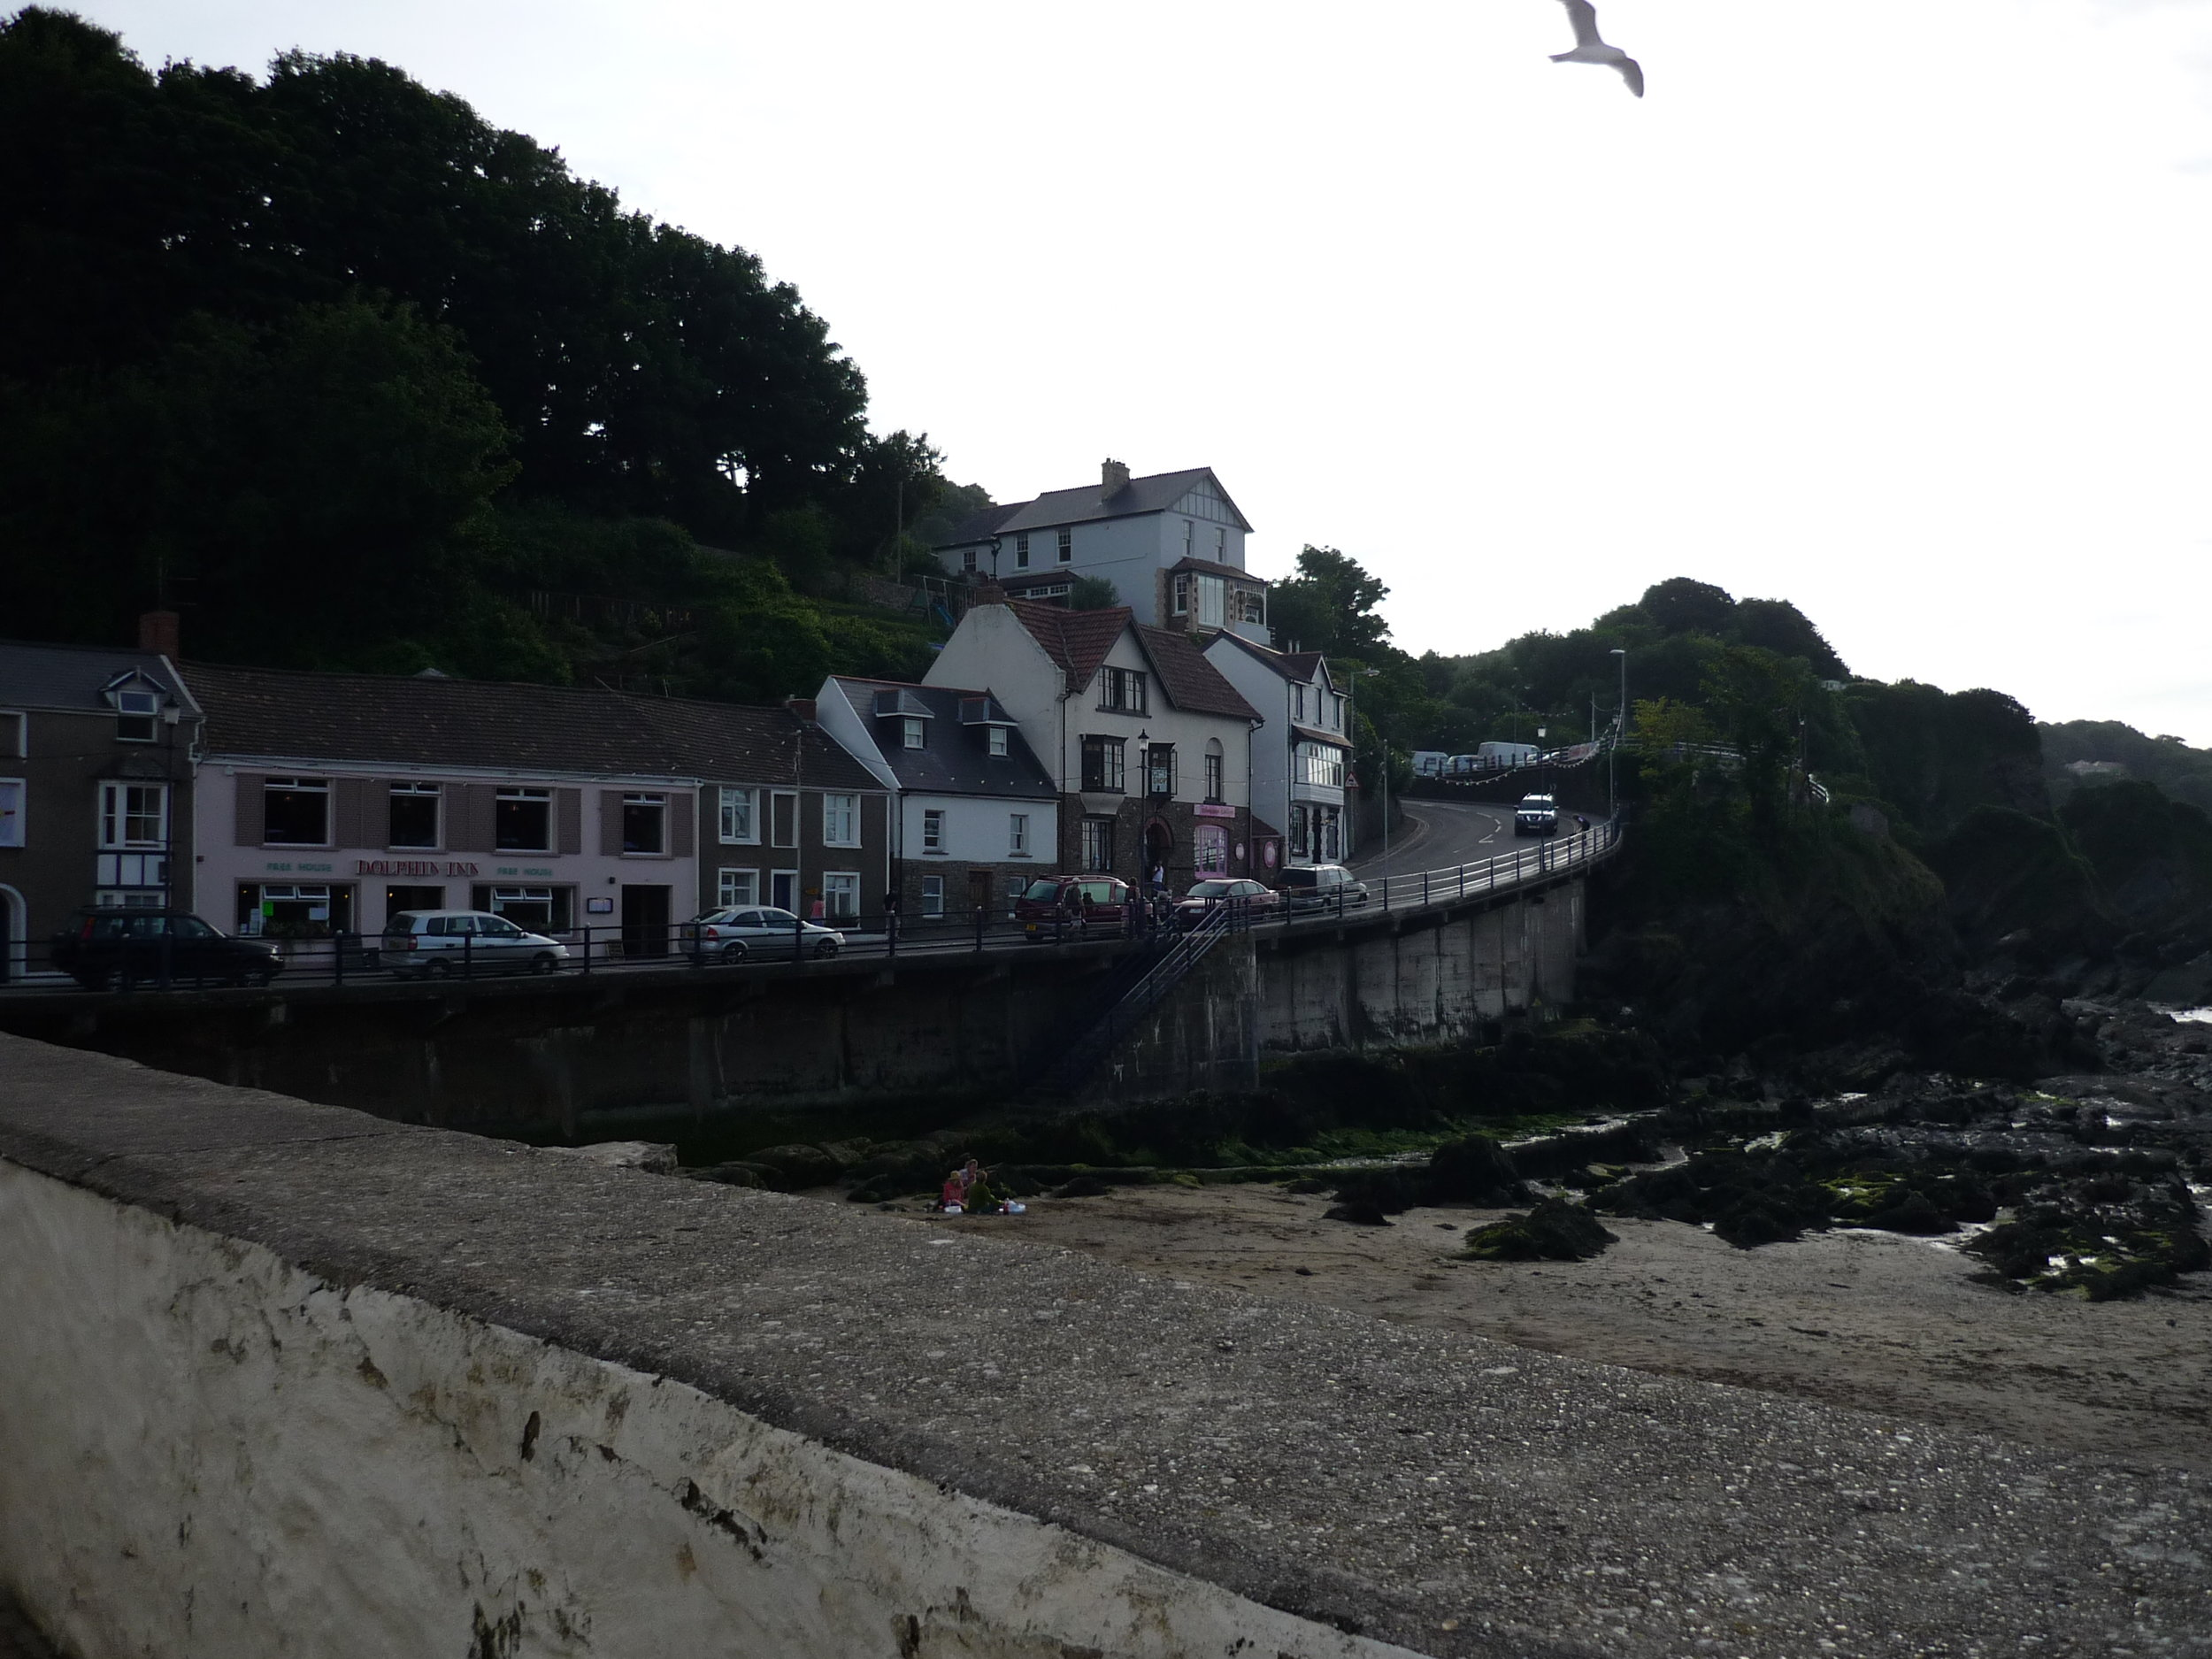 The harbour at Combe Martin today